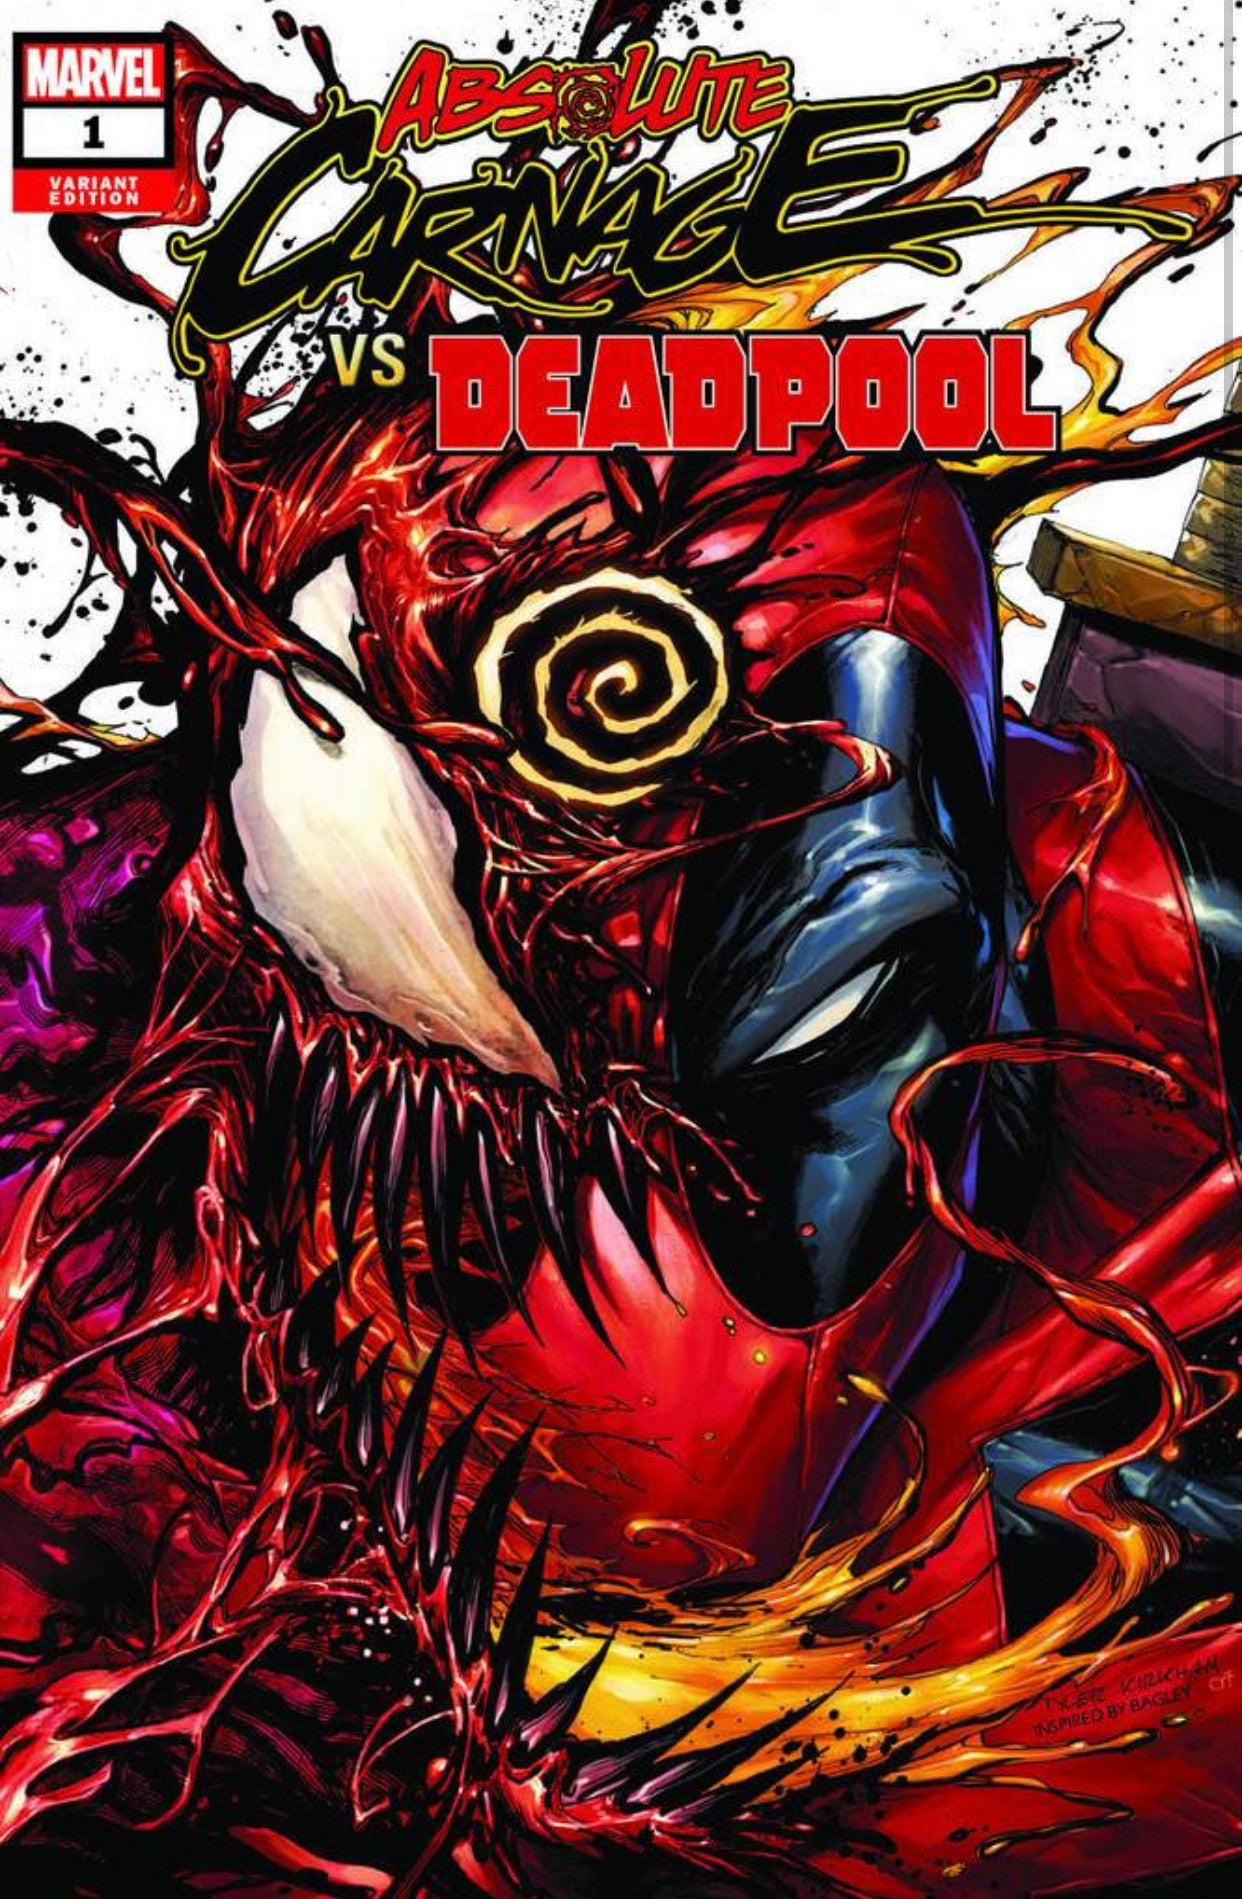 ABSOLUTE CARNAGE VS DEADPOOL #1 TYLER KIRKHAM VARIANT